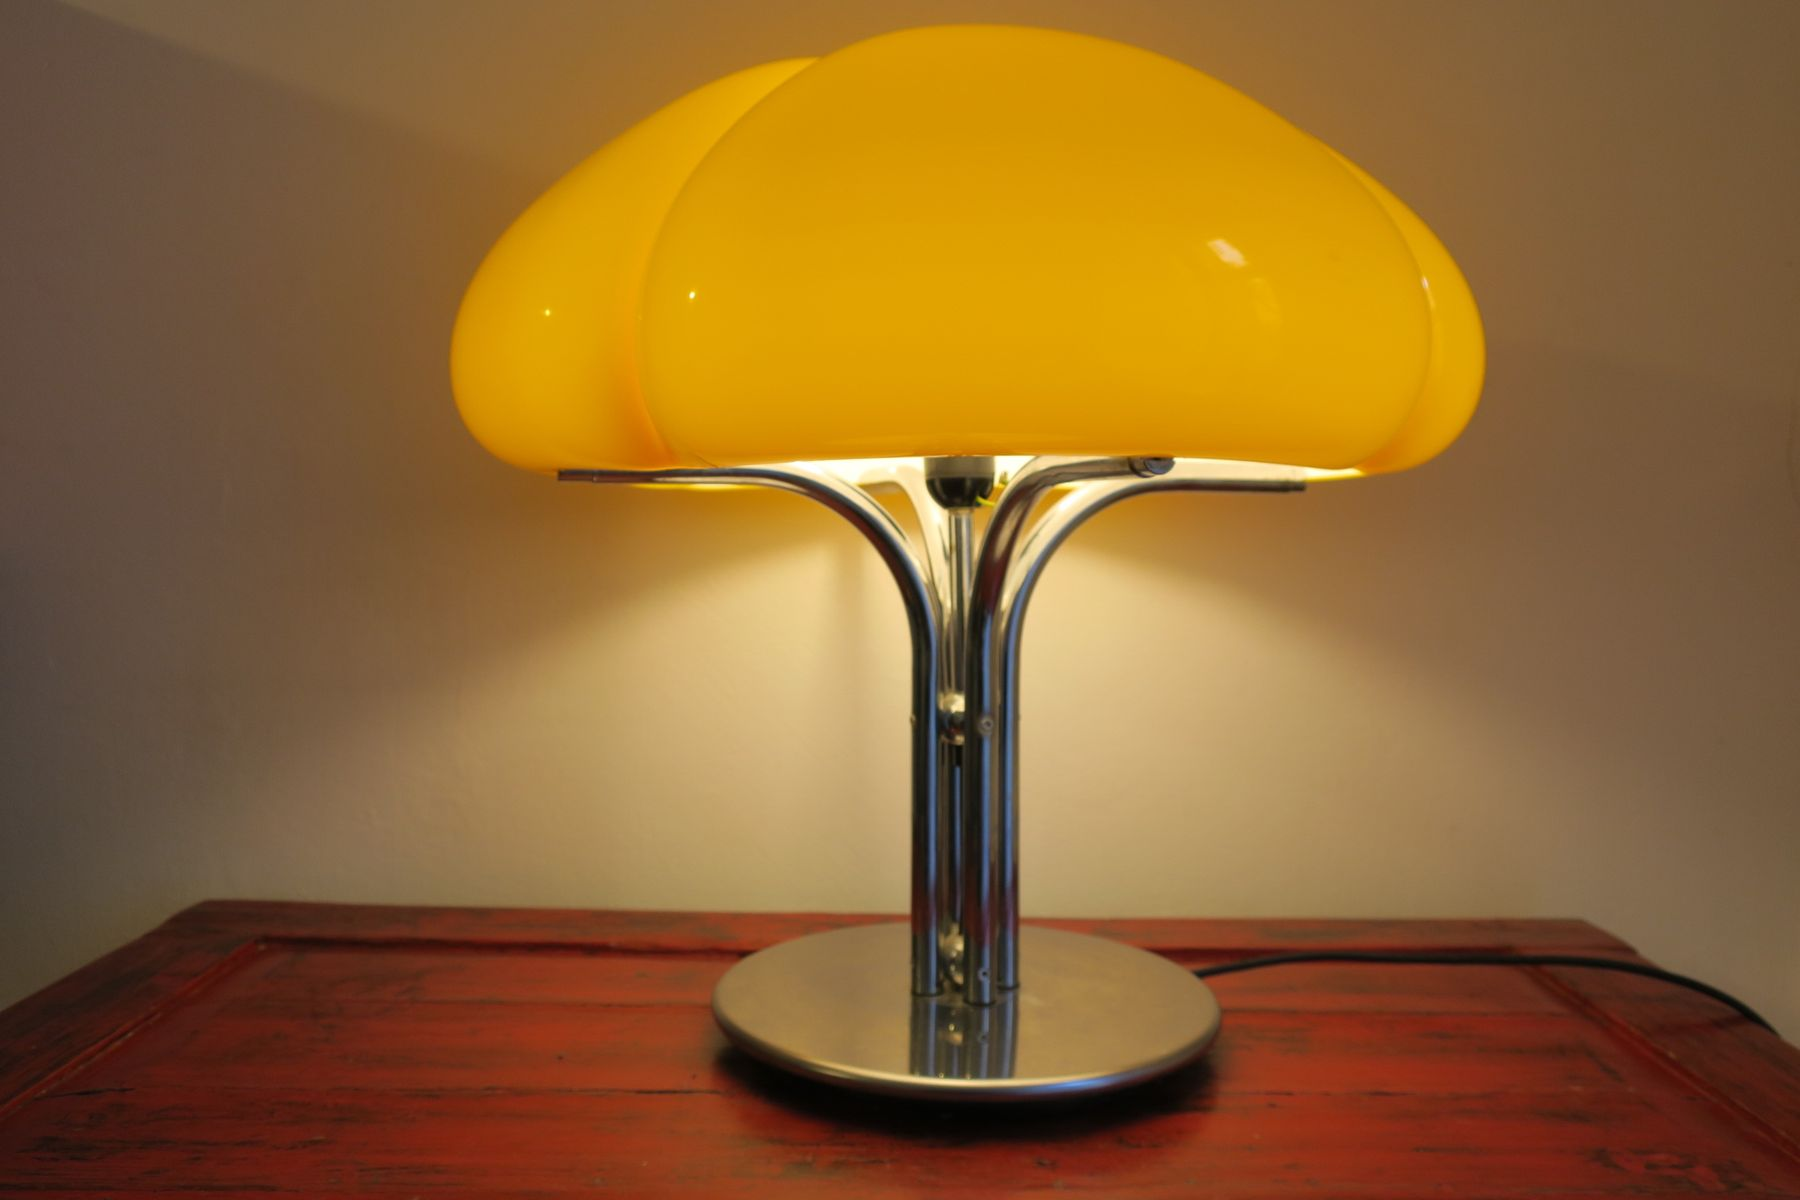 lampe de bureau quadrifoglio jaune canard par gae aulenti pour guzzini 1970s en vente sur pamono. Black Bedroom Furniture Sets. Home Design Ideas